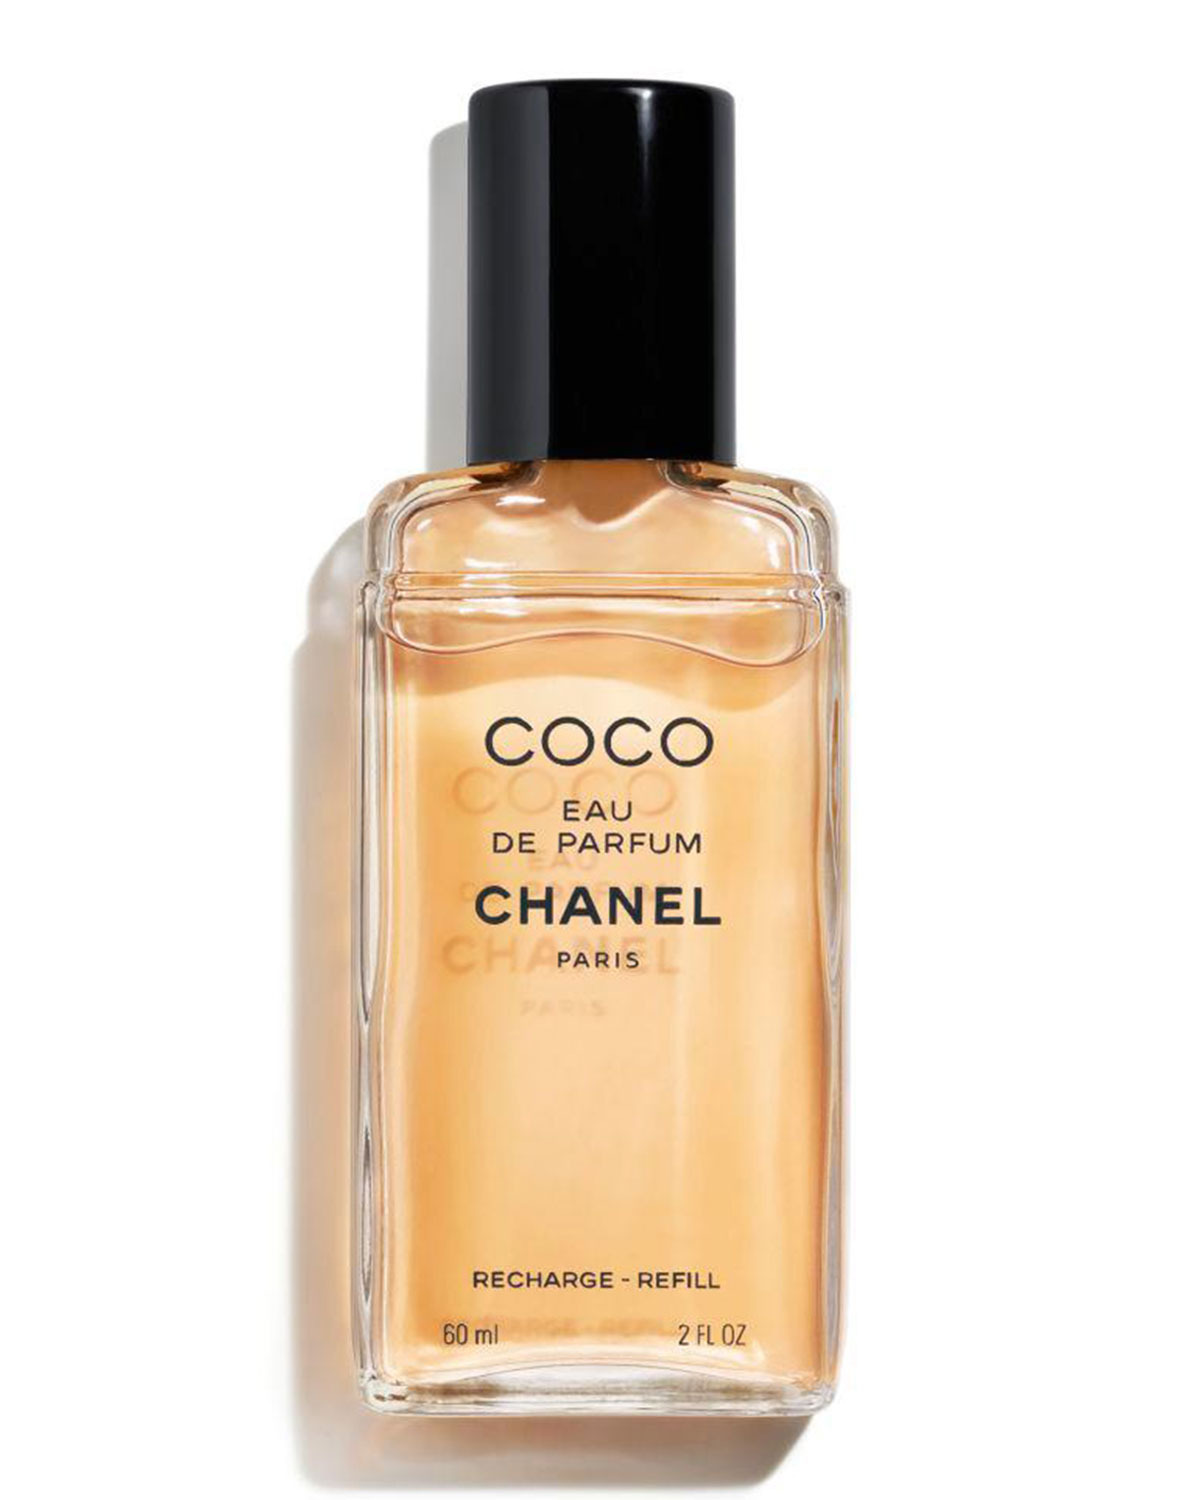 CHANEL COCO Eau de Parfum Refillable Spray 0.25 oz. Refill  9e51585e172c